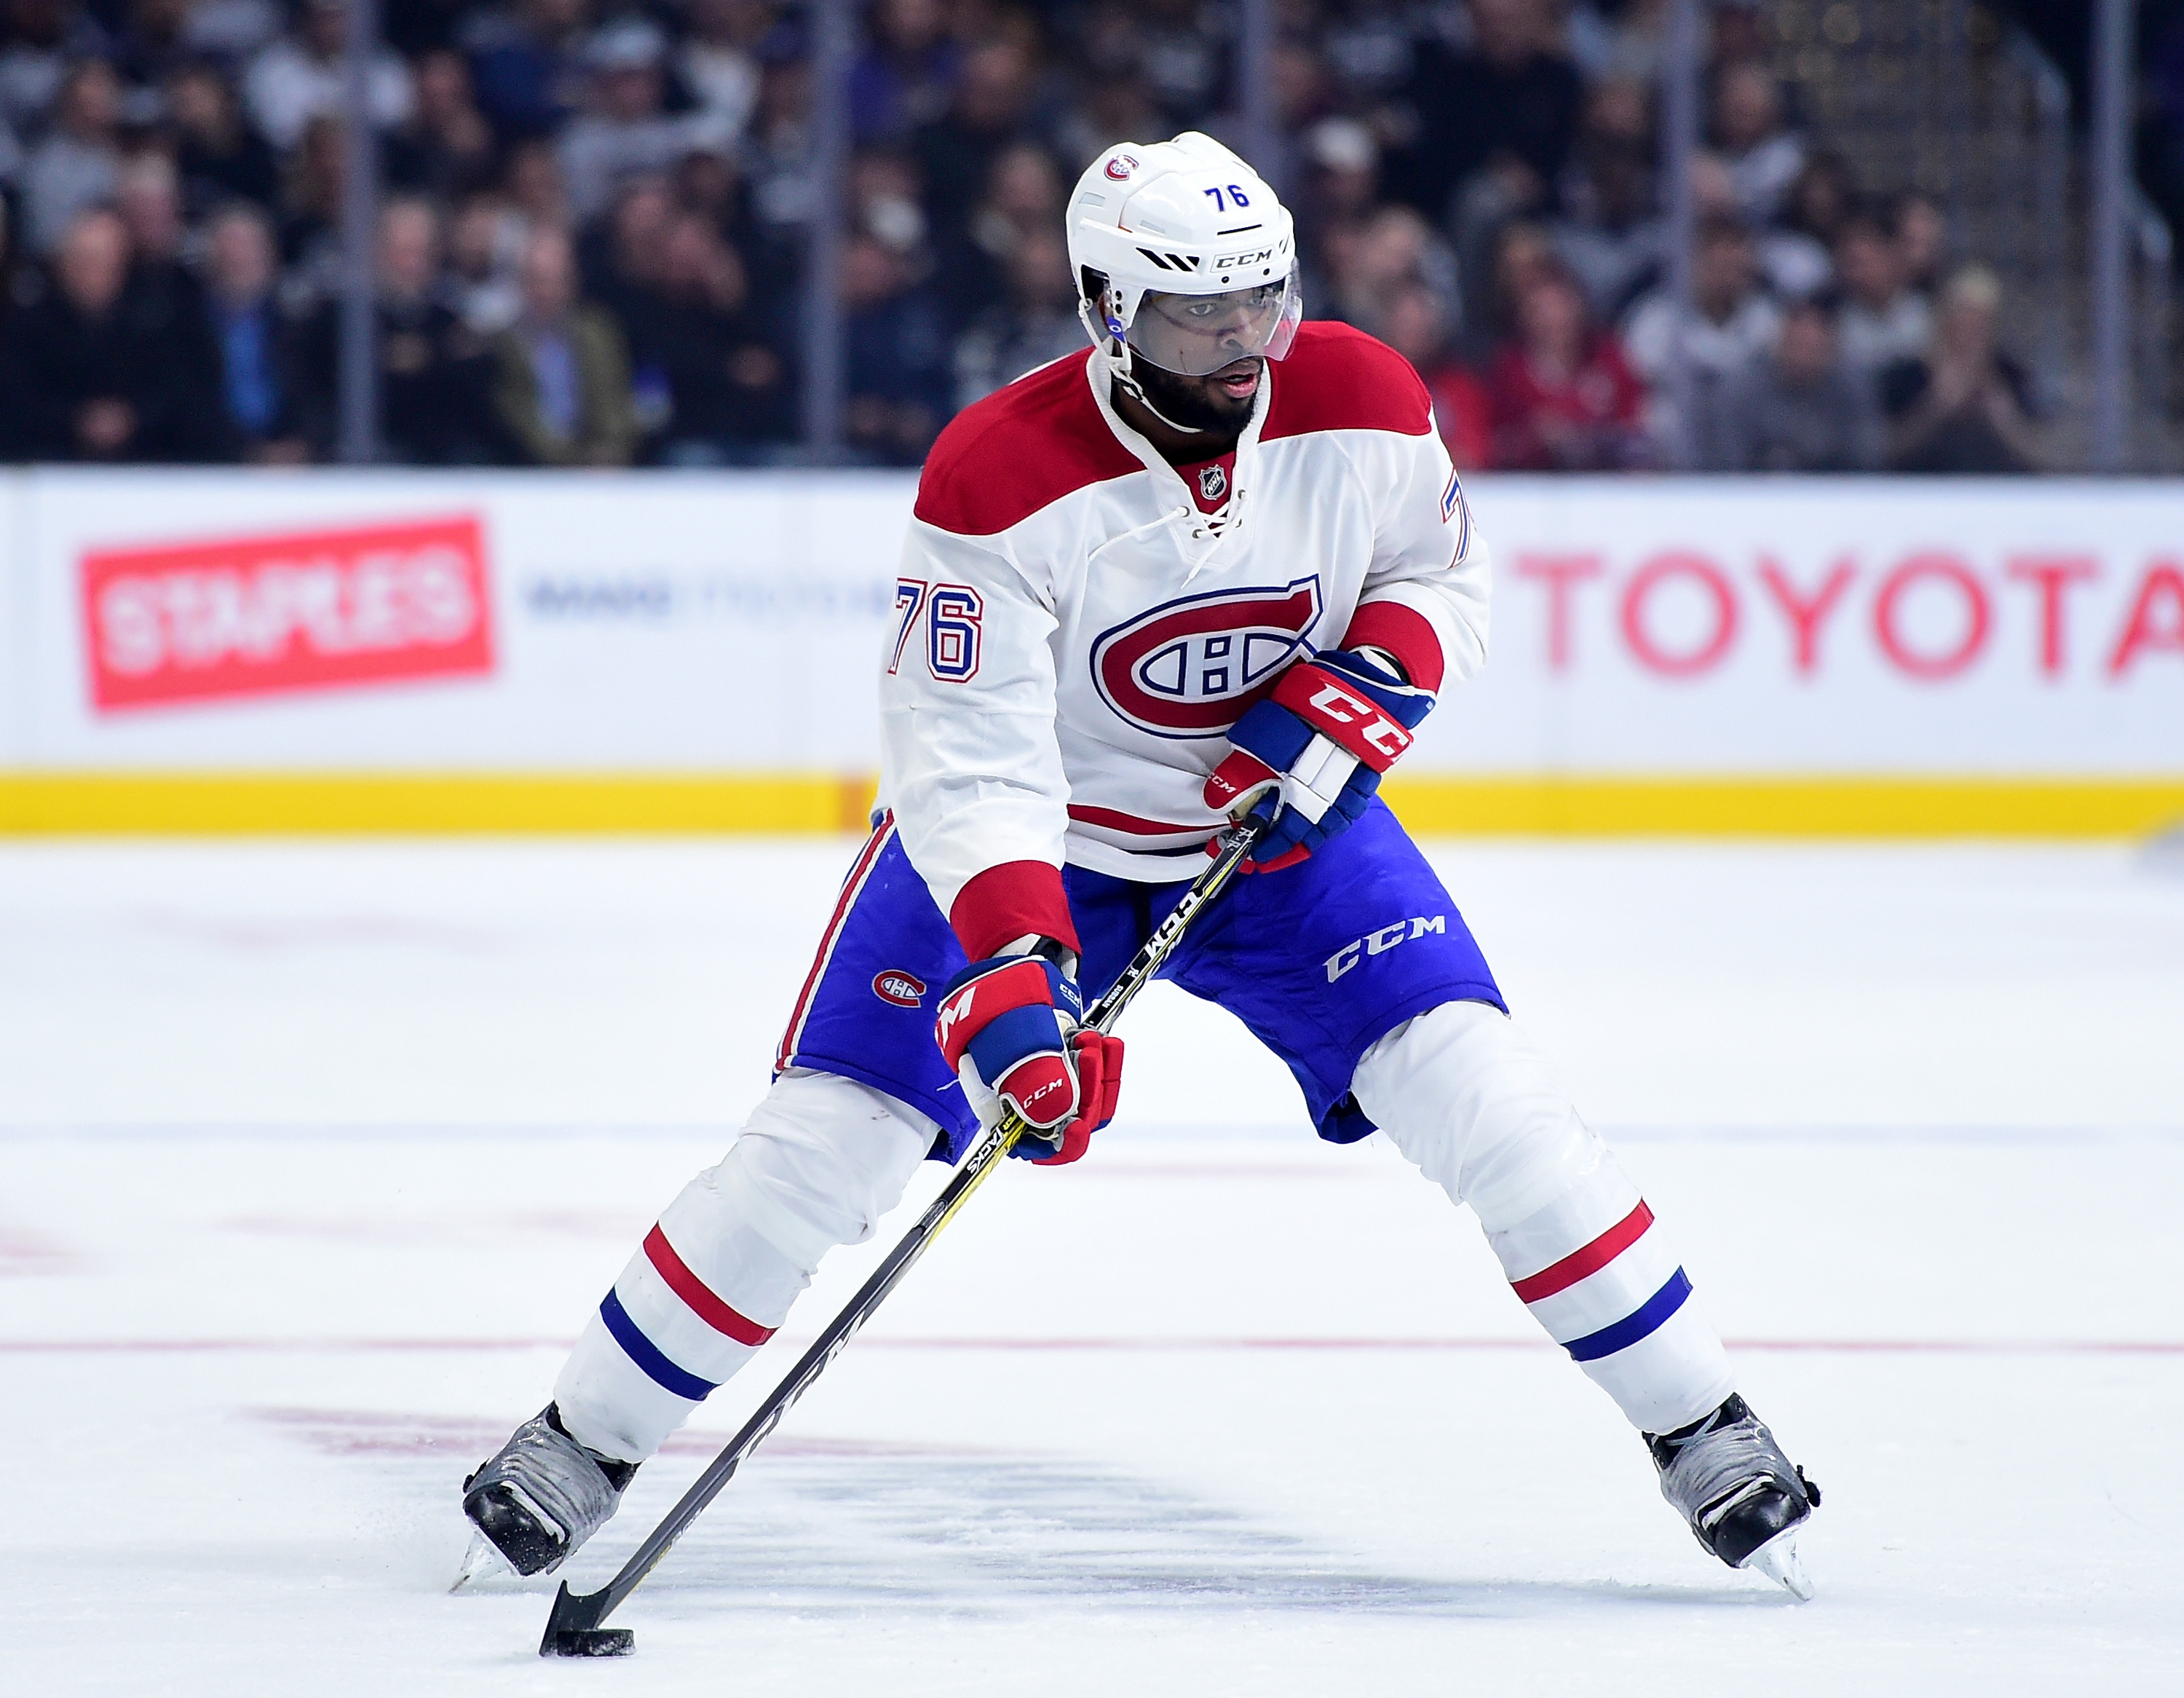 P.K. Subban was too flamboyant for the staid Canadiens (Getty Images).